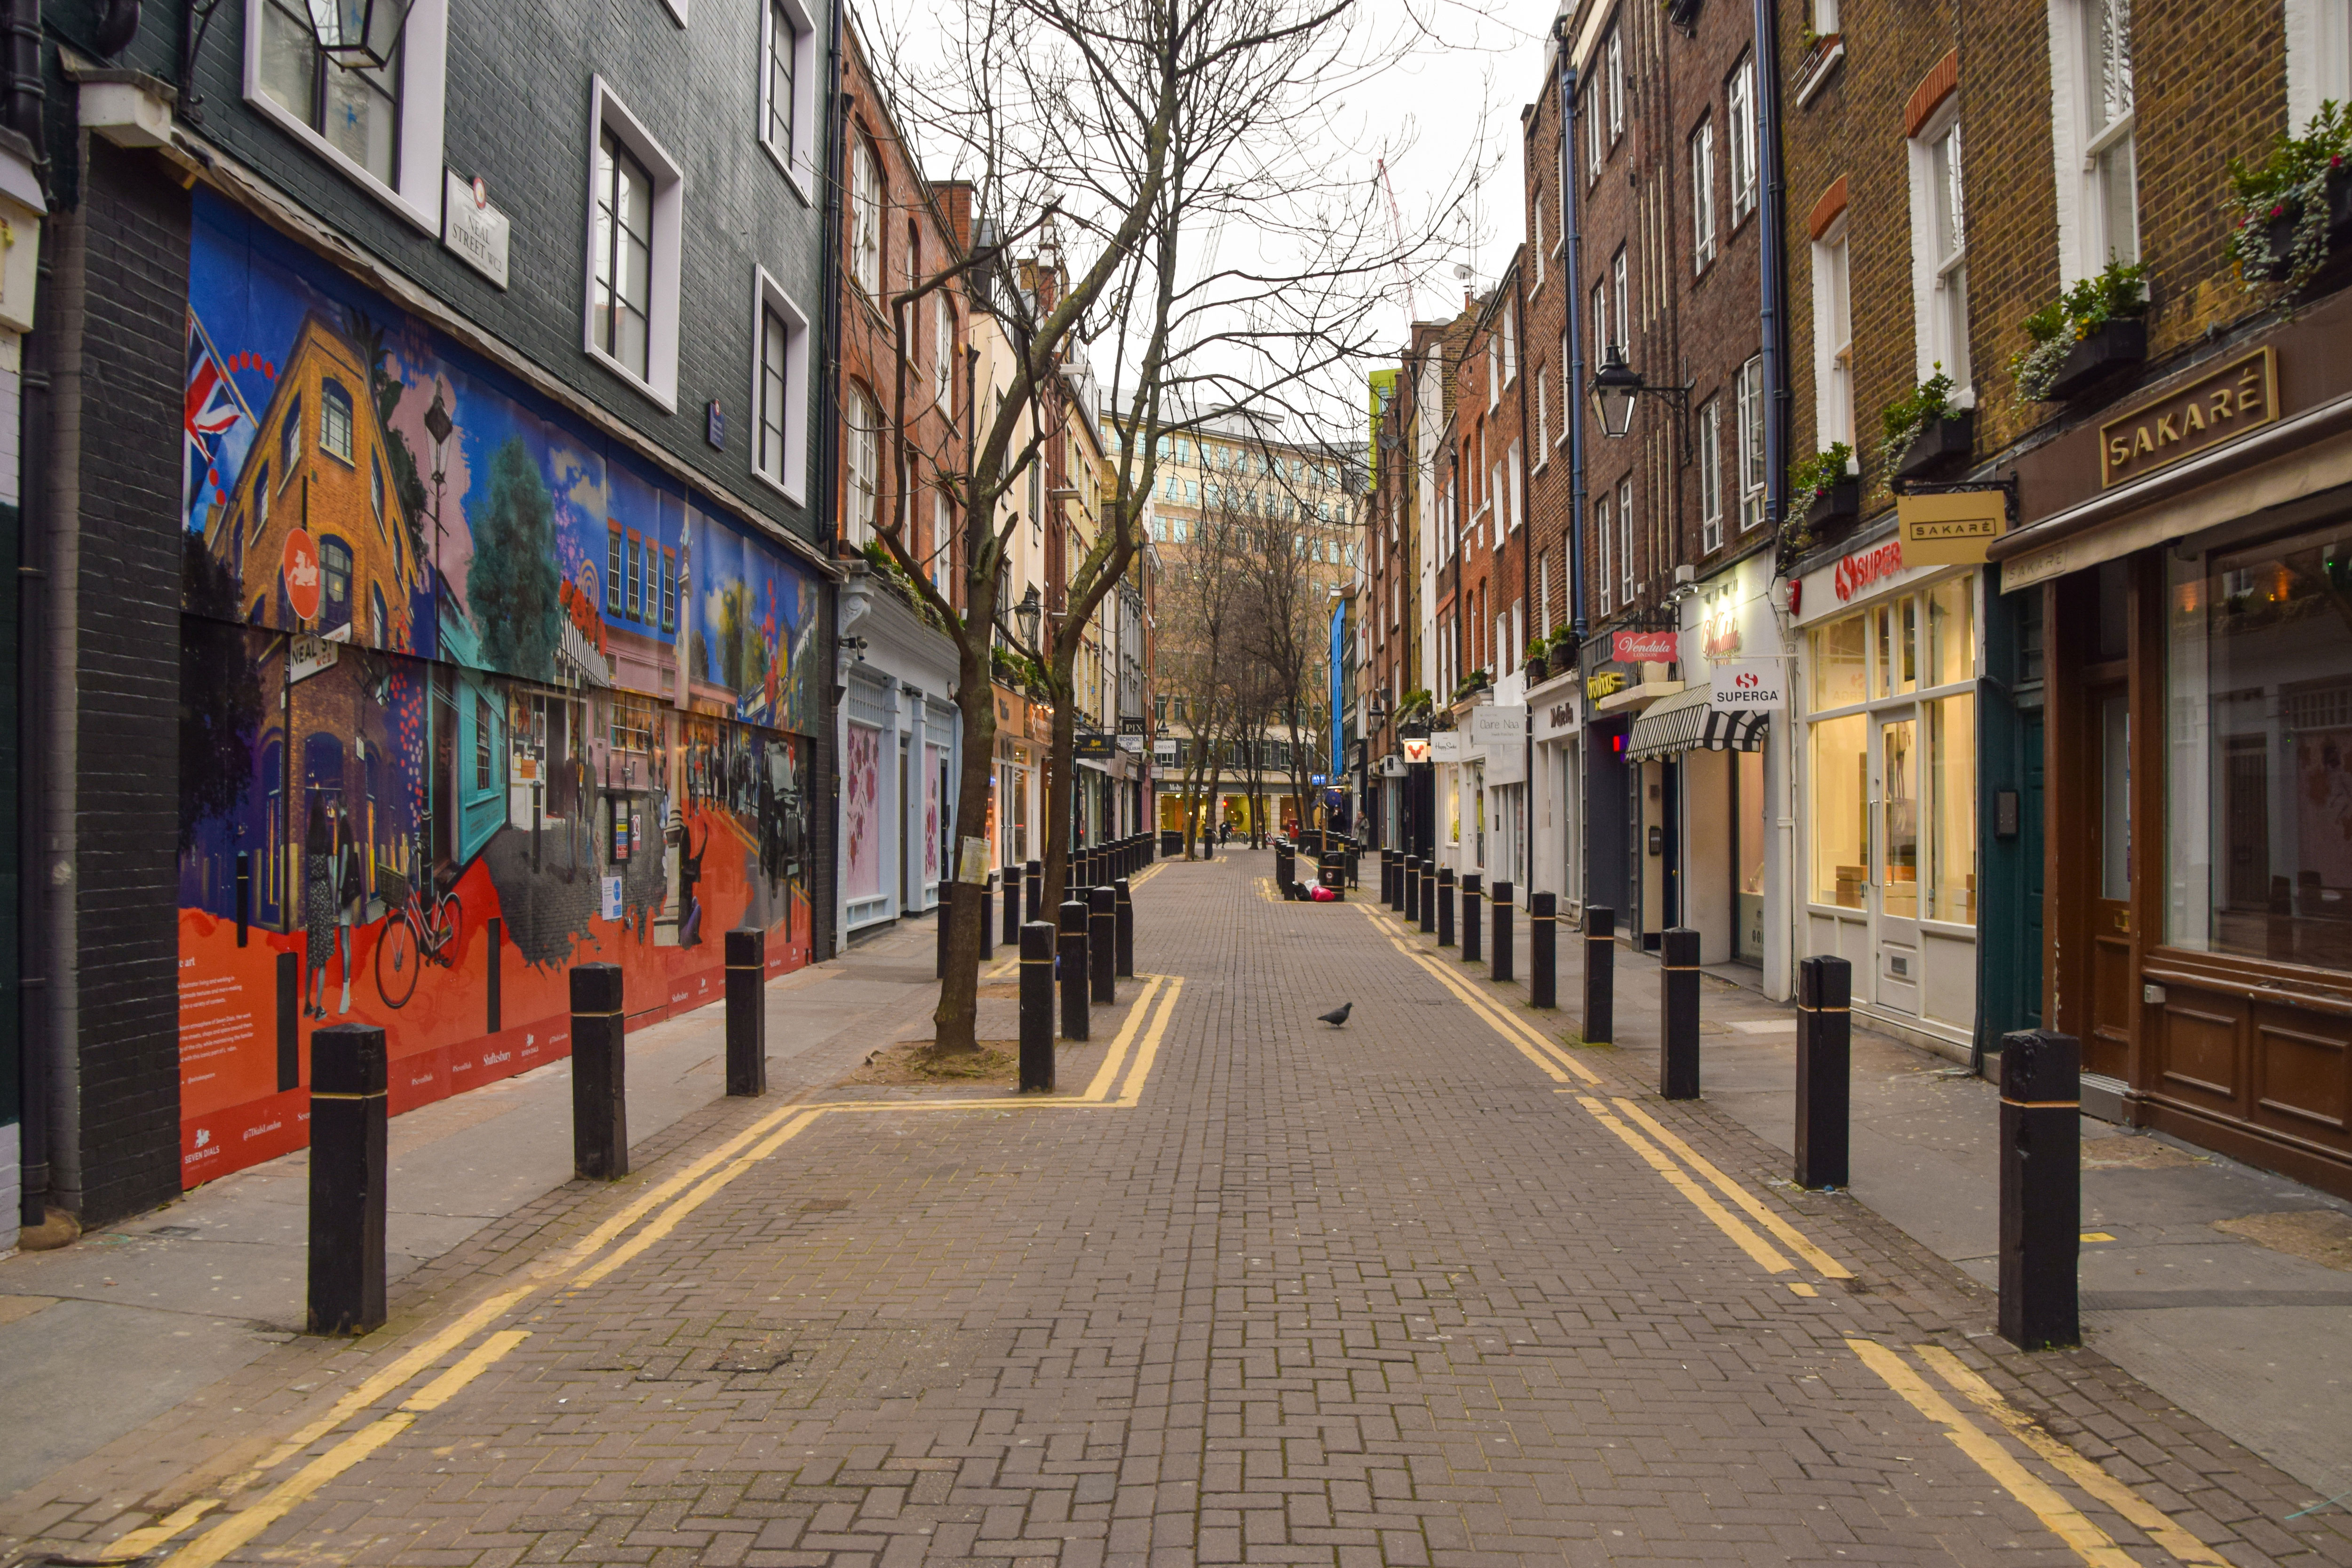 Neal Street in London's Covent Garden is empty on February 14.